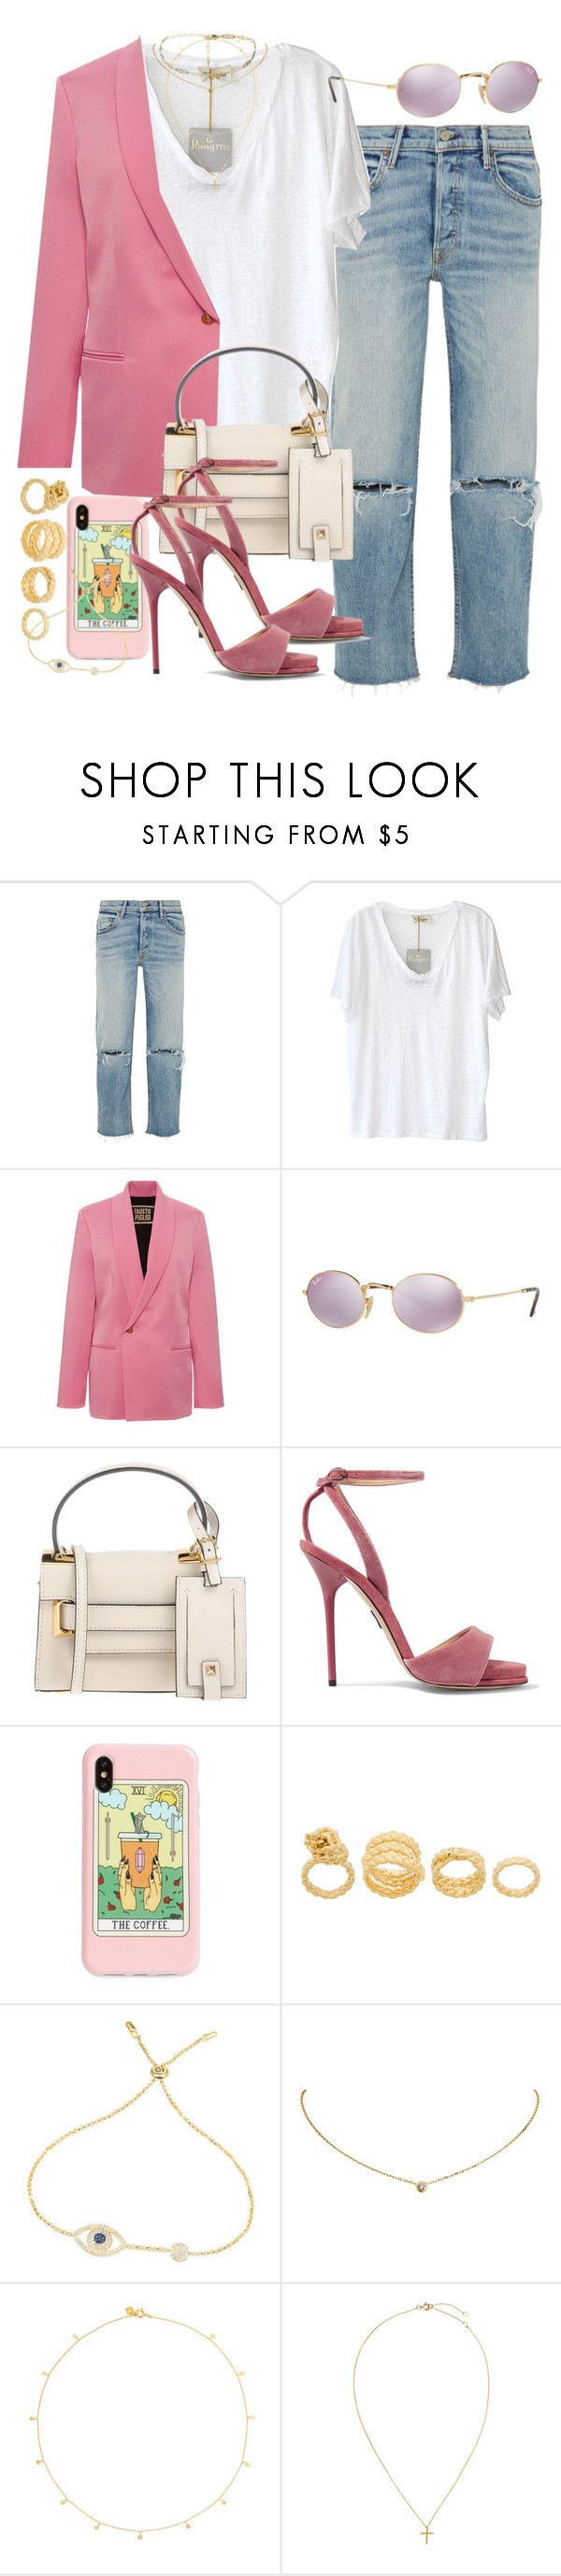 """""""Sin título #4629"""" by hellomissapple ❤ liked on Polyvore featuring GRLFRND, American Vintage, FAUSTO PUGLISI, Ray-Ban, Valentino, Paul Andrew, Recover, Maison Margiela, Cartier and Scosha"""